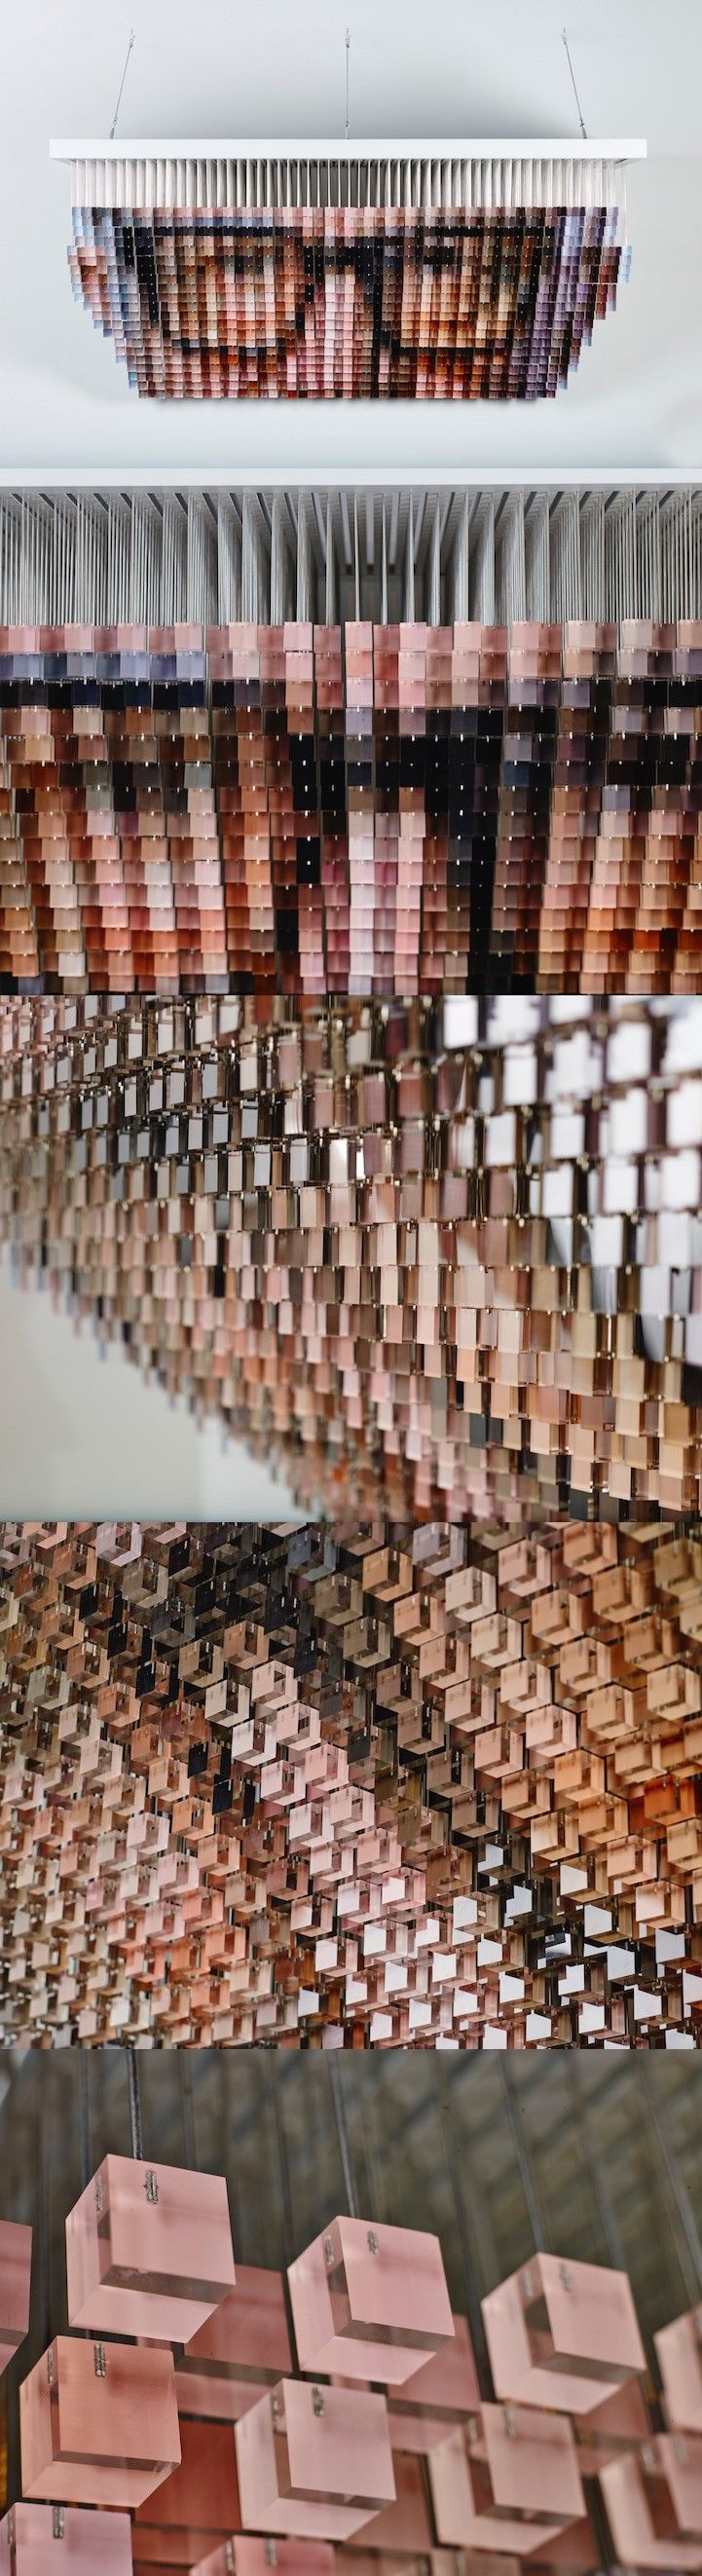 Artist Andrew Myers Suspends 1,200 Hand-Painted Cubes to Create a Pixelated Portrait